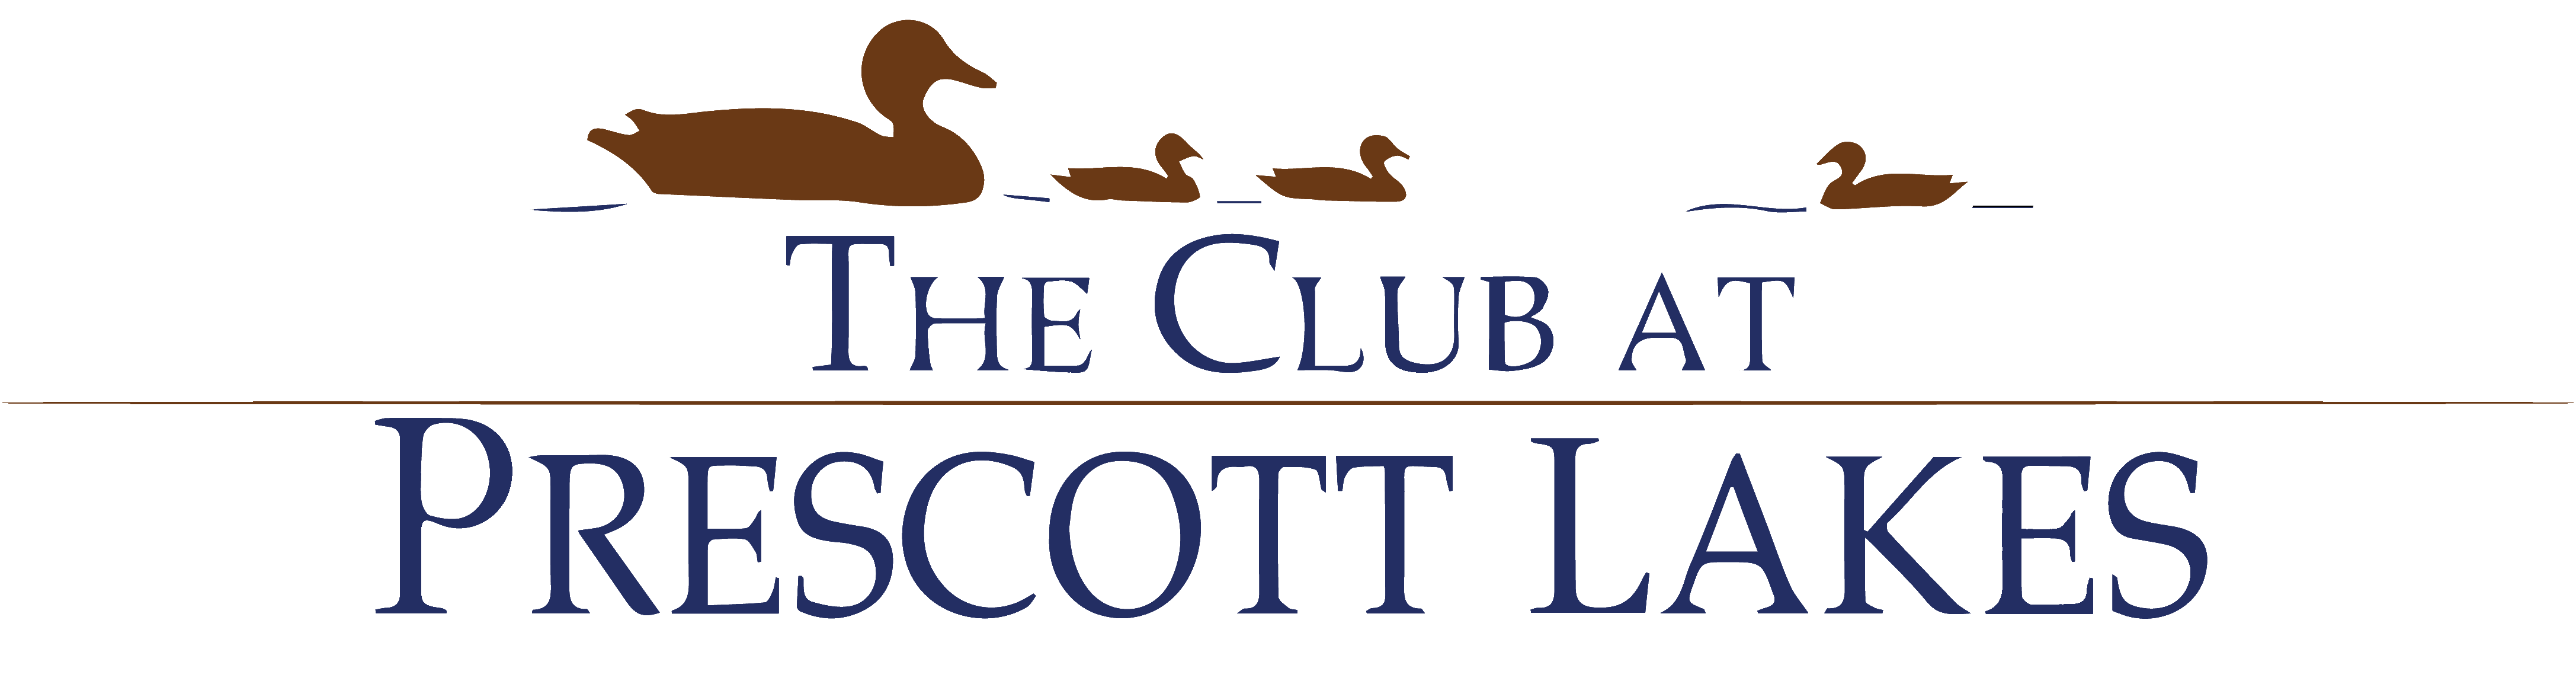 The Club at Prescott Lakes